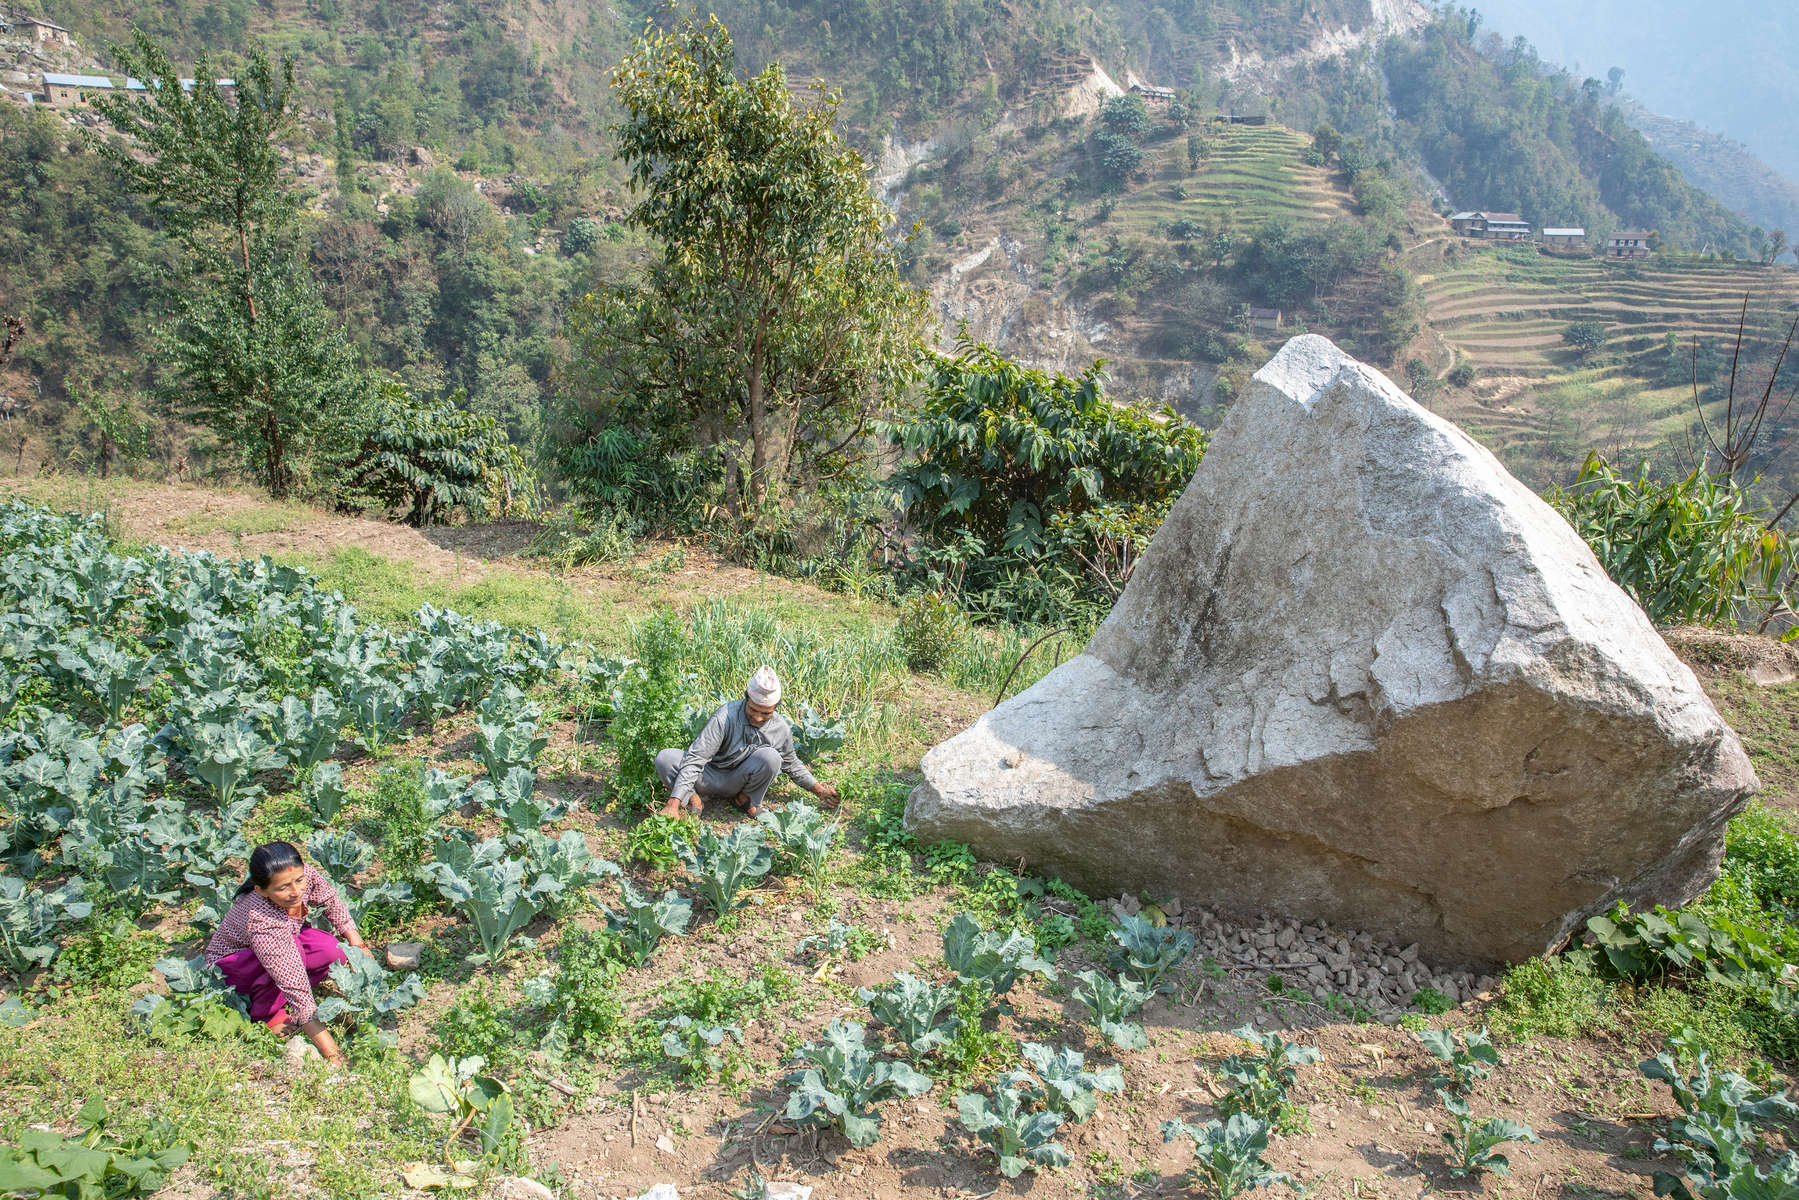 "Sabitri Phuyal and her husband, Shyam Prasad Dahal, work in their vegetable fields, surrounded by boulders that rained down on their village during the earthquake of 2015. They depended on their vegetable farm for food and income until the 2015 earthquakes triggered a landslide that wiped out their fields and made it unsafe for them to live in their home. They lived in a temporary shelter with four other families for nine months, and couldn't work, until Mercy Corps built a gabion wall that secured the hillside above the couple's home. After the wall was built, Shyam and Sabitri finally felt safe enough to return and begin rebuilding their lives. They took a Mercy Corps'-facilitated vegetable farming training and received plastic sheeting to build a greenhouse, and also participated in Mercy Corps' family dialogue training, which helps women and heads of household work to together to become stronger and more resilient. ""We had lost all hope of coming back. With all that happened, we don't have enough wealth to relocate somewhere else and start a new life as well. So we got encouragement to start farming here, start making our livelihood here again,"" says Shyam. ""I feel happy when he asks me for my opinion,"" Sabitri says. ""Before he would just do it himself, and he would work in the fields himself. And I would just think, 'OK that's his job. I'll just let him do it.' But when he asks me, I feel like, 'OK, this is my responsibility too.' I feel good about it. """